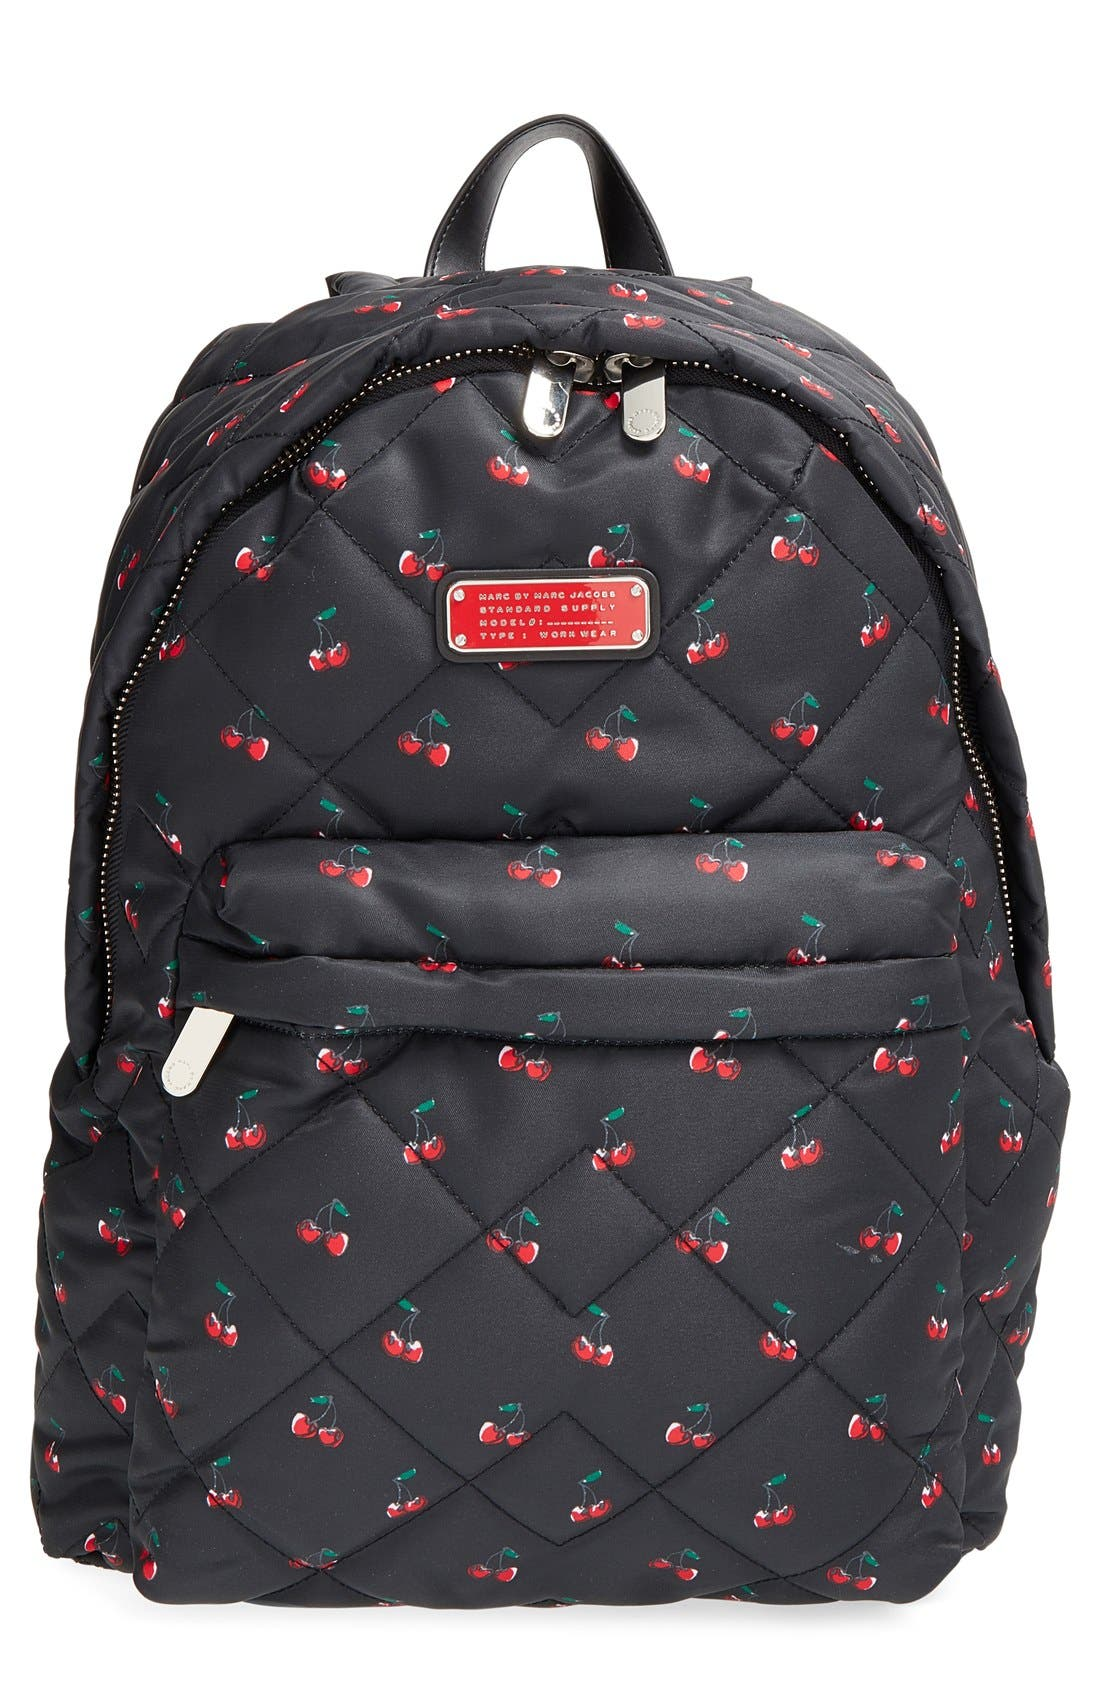 Alternate Image 1 Selected - MARC BY MARC JACOBS 'Crosby' Quilted Fruit Print Backpack